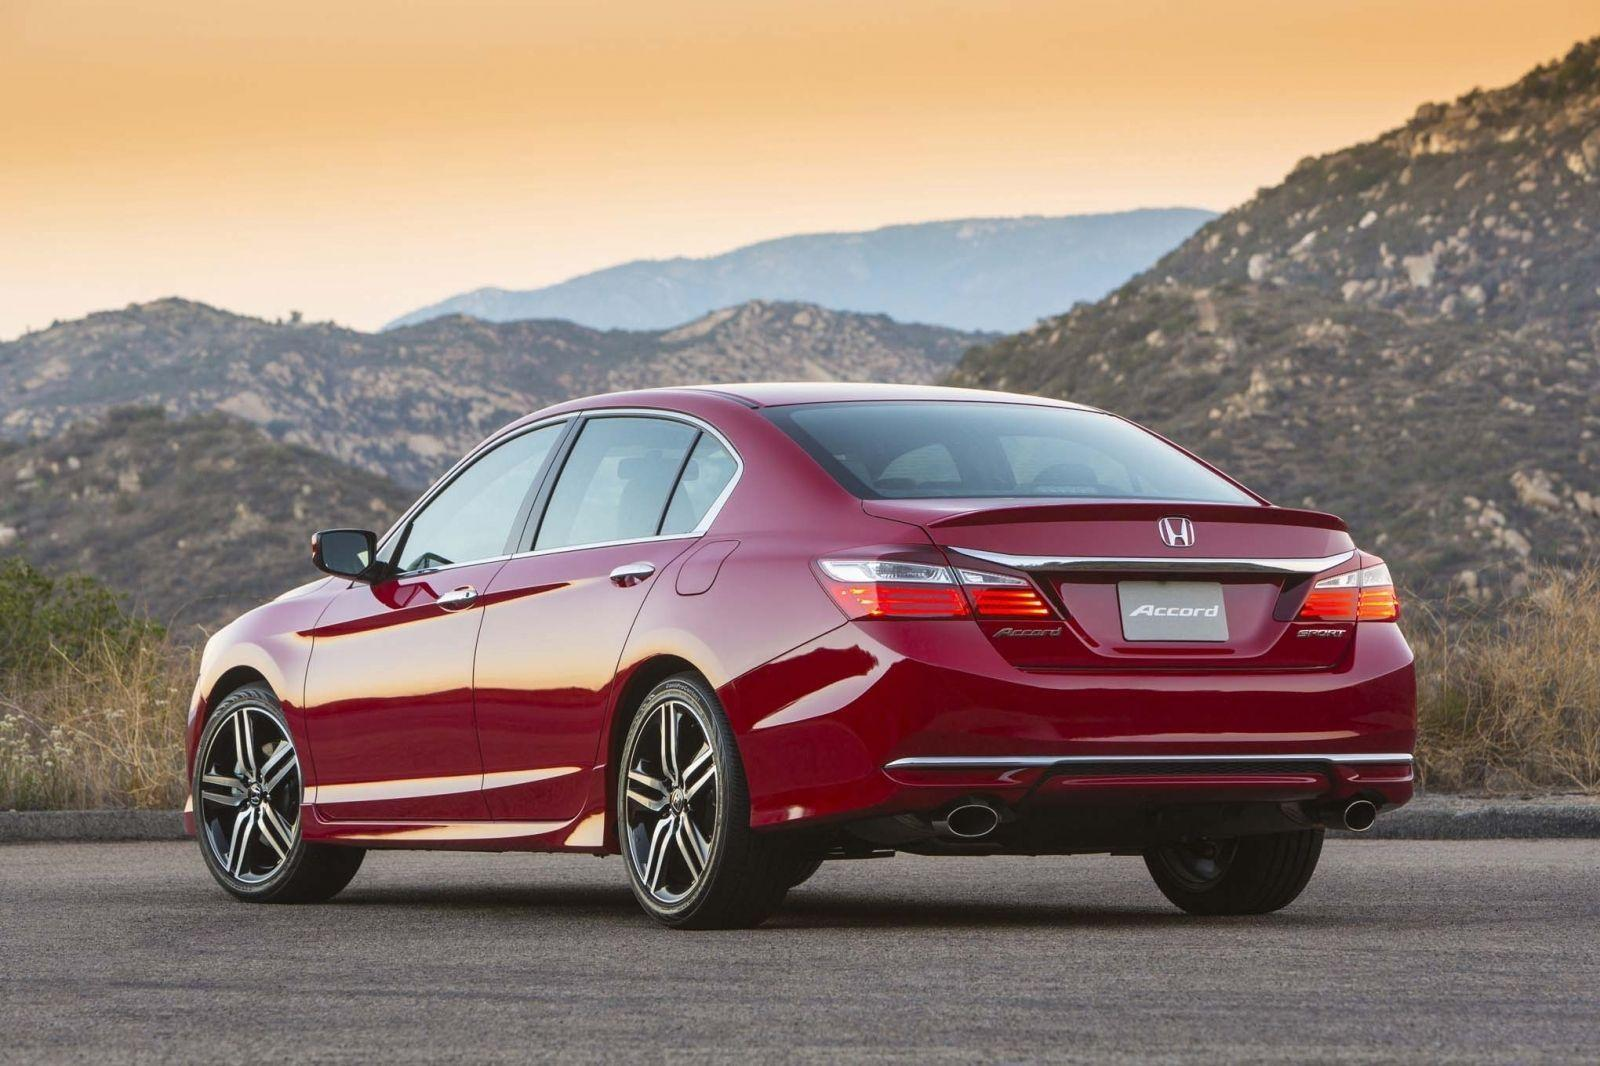 accord honda coupe wallpapers